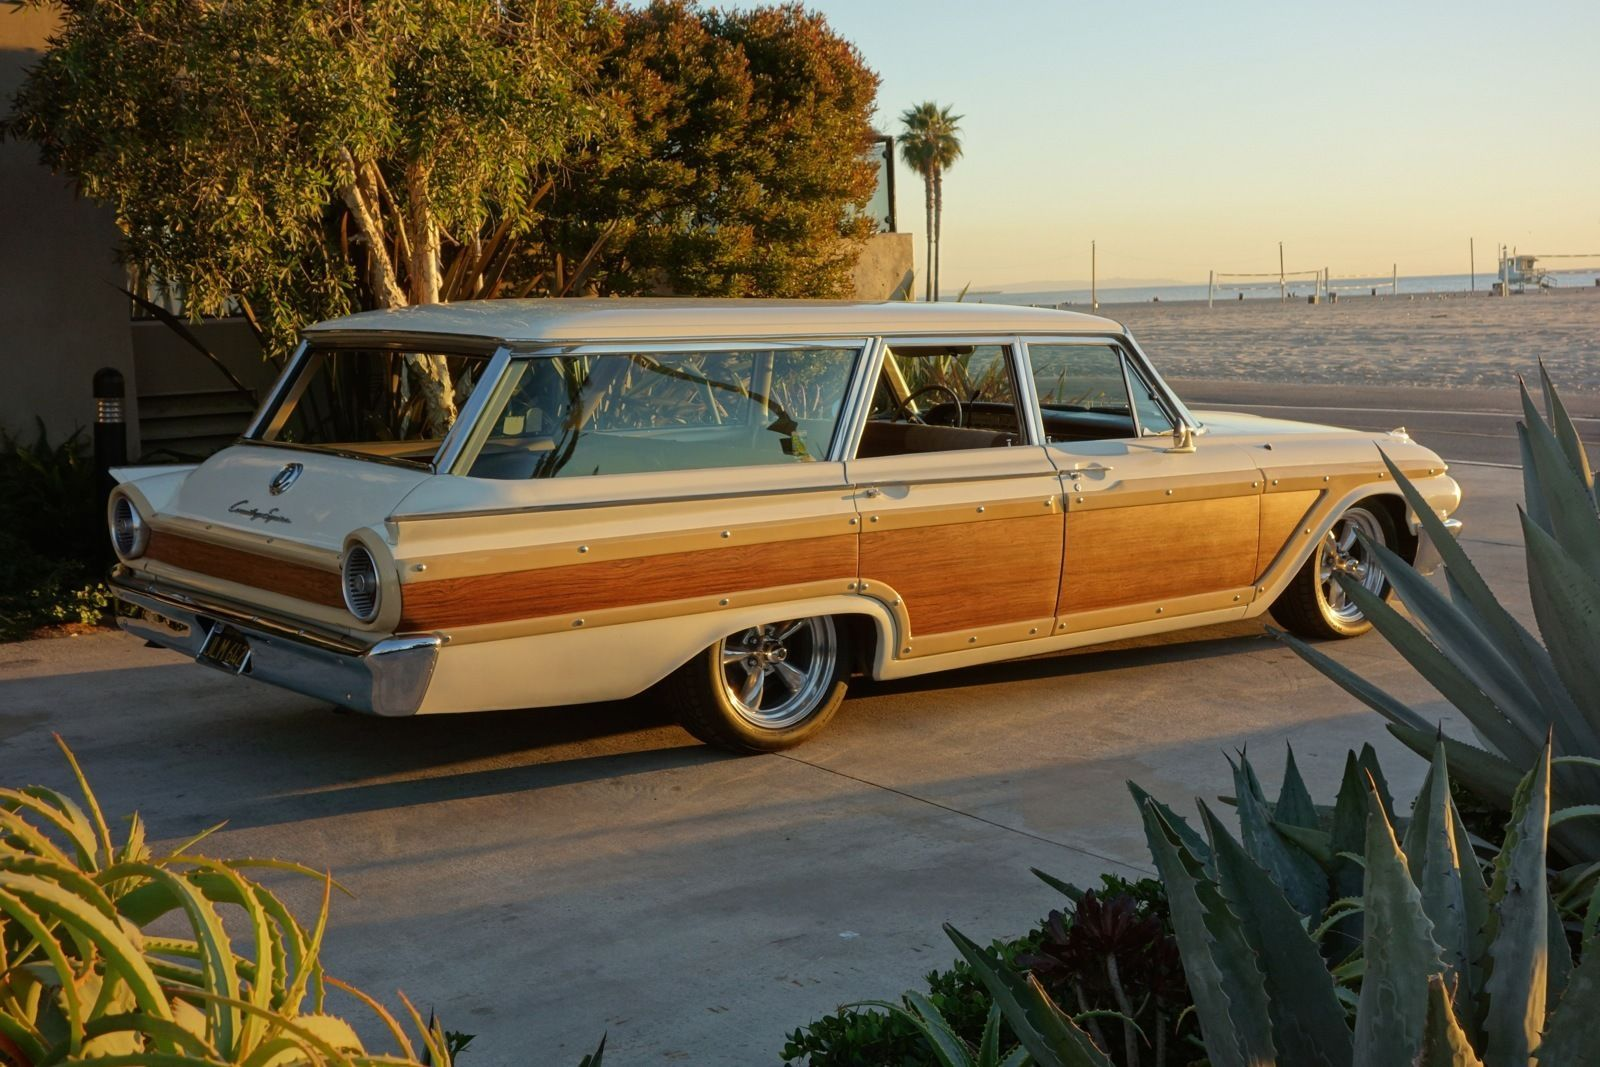 1963 ford galaxie parts ebay - 1961 Ford Galaxie Country Squire Wagon